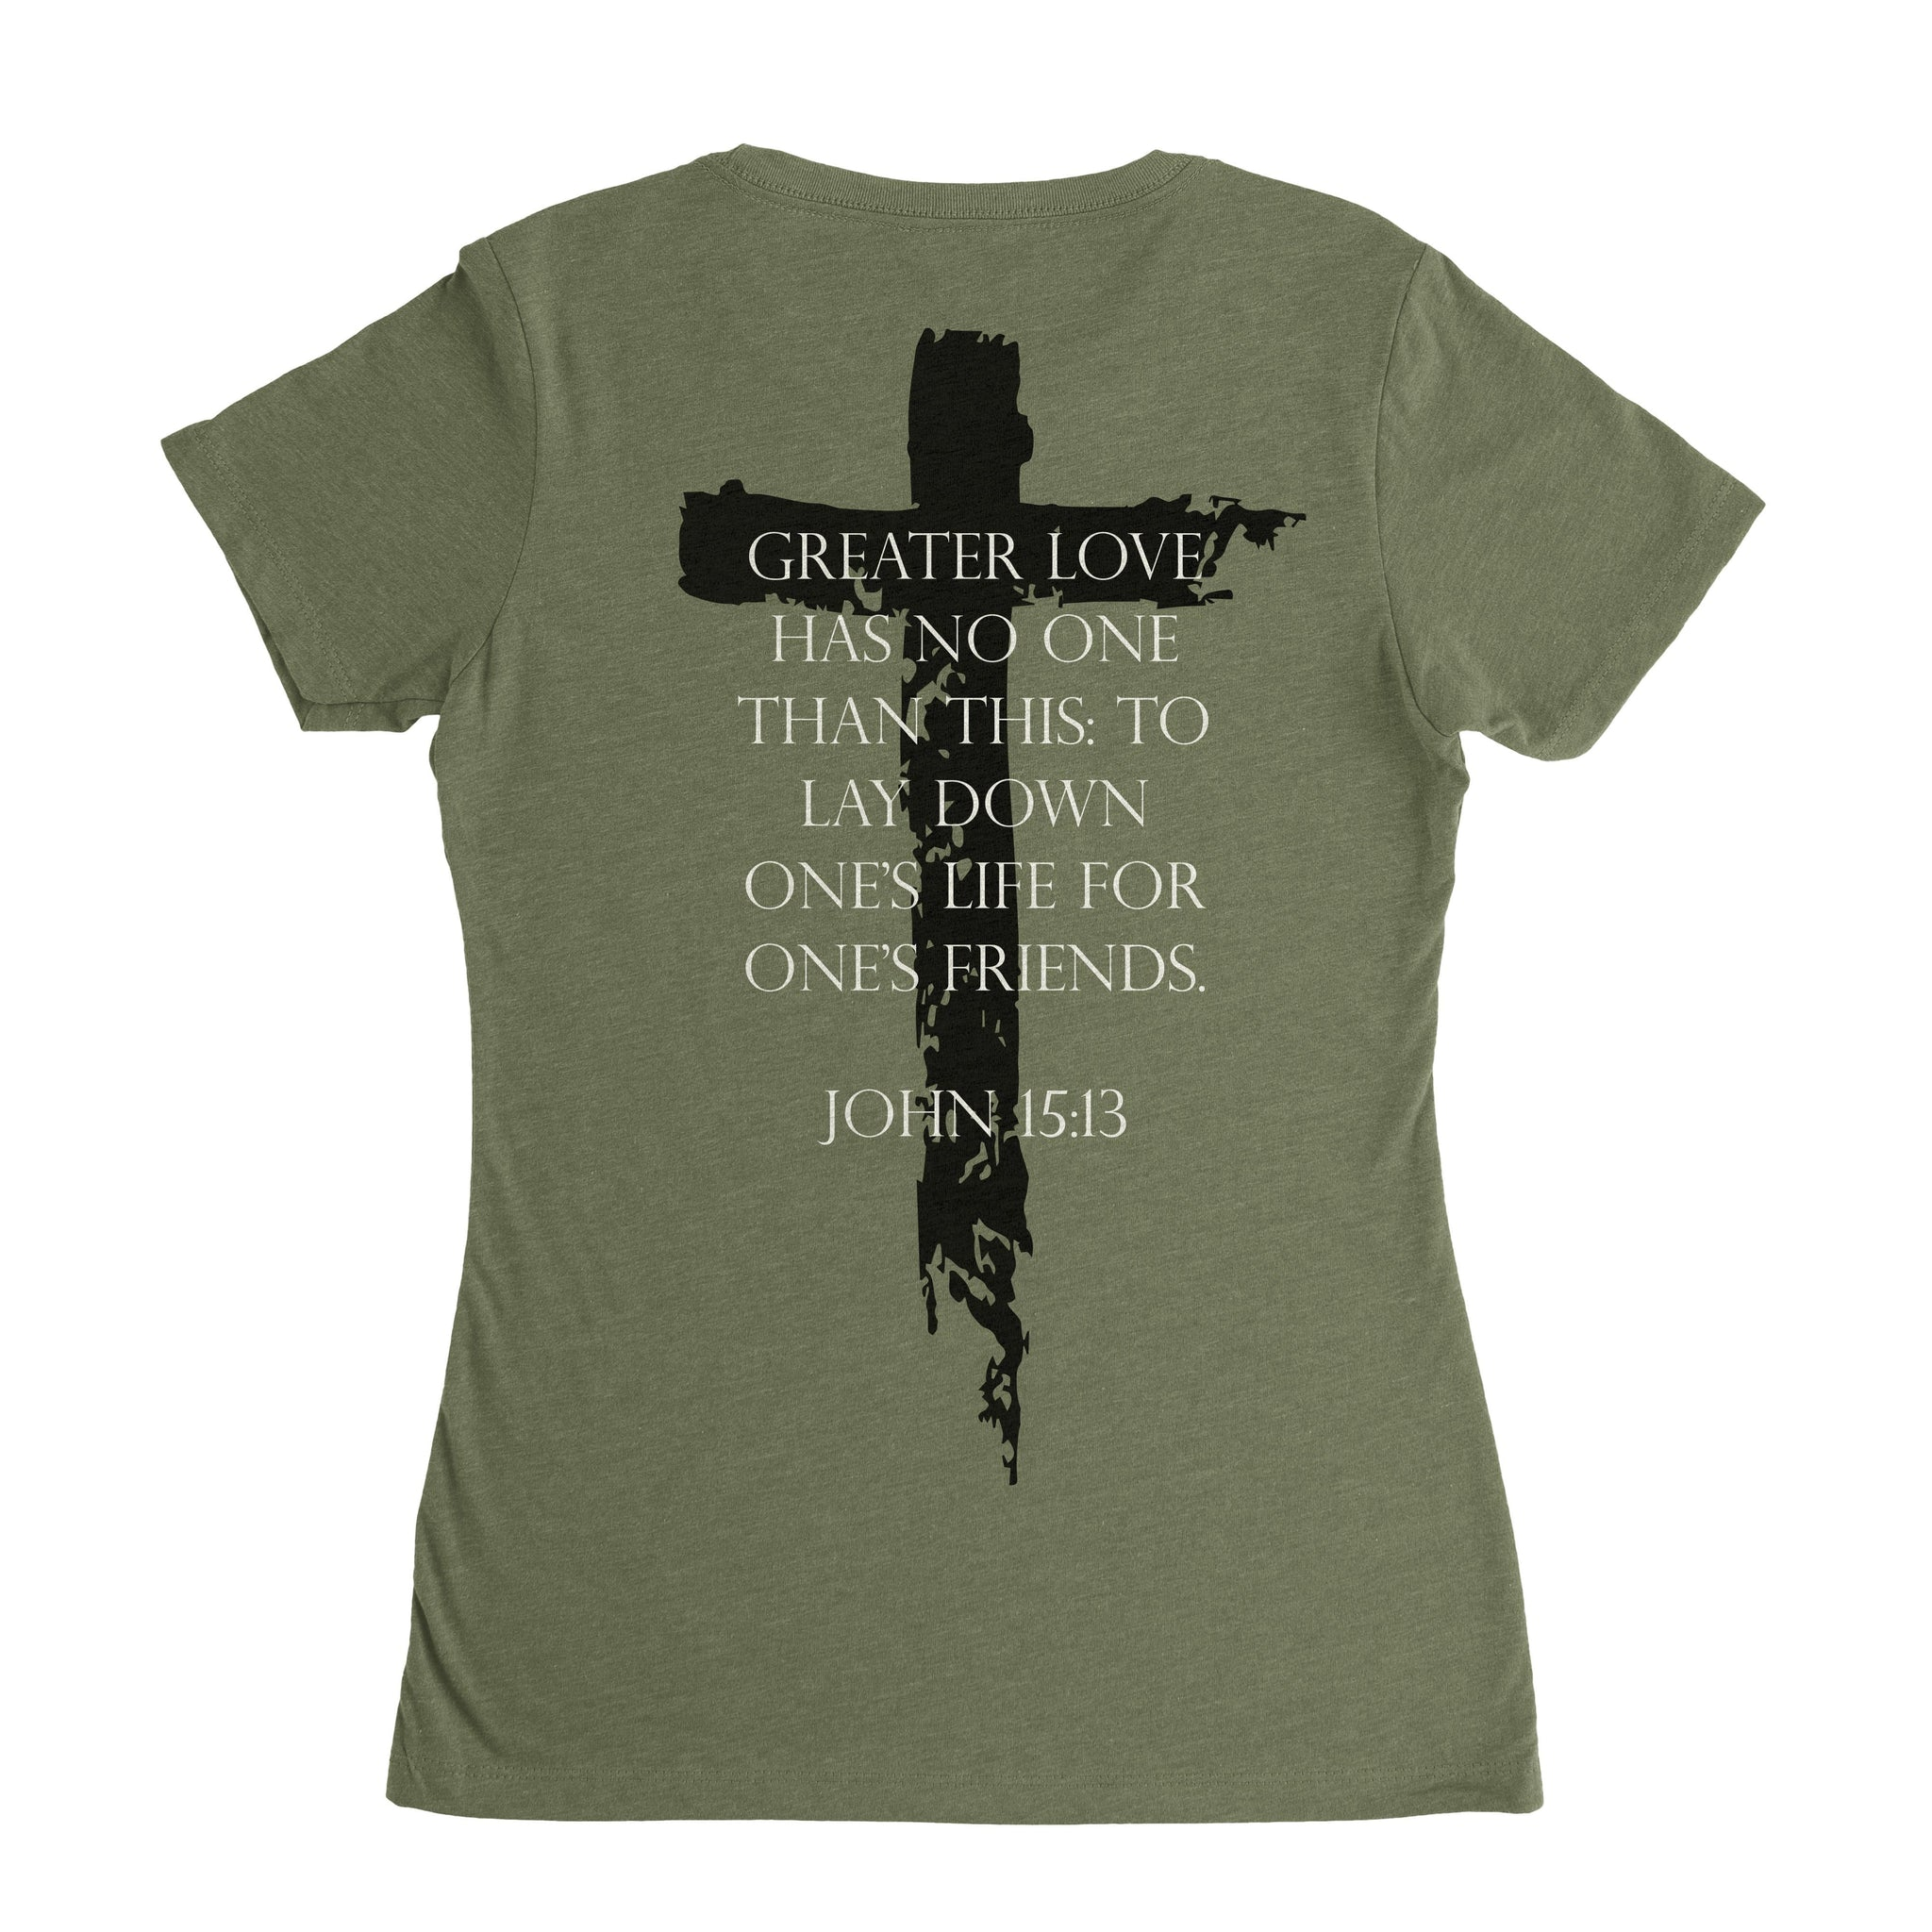 John 15:13 Crew - Military Green - T-Shirts - Pipe Hitters Union